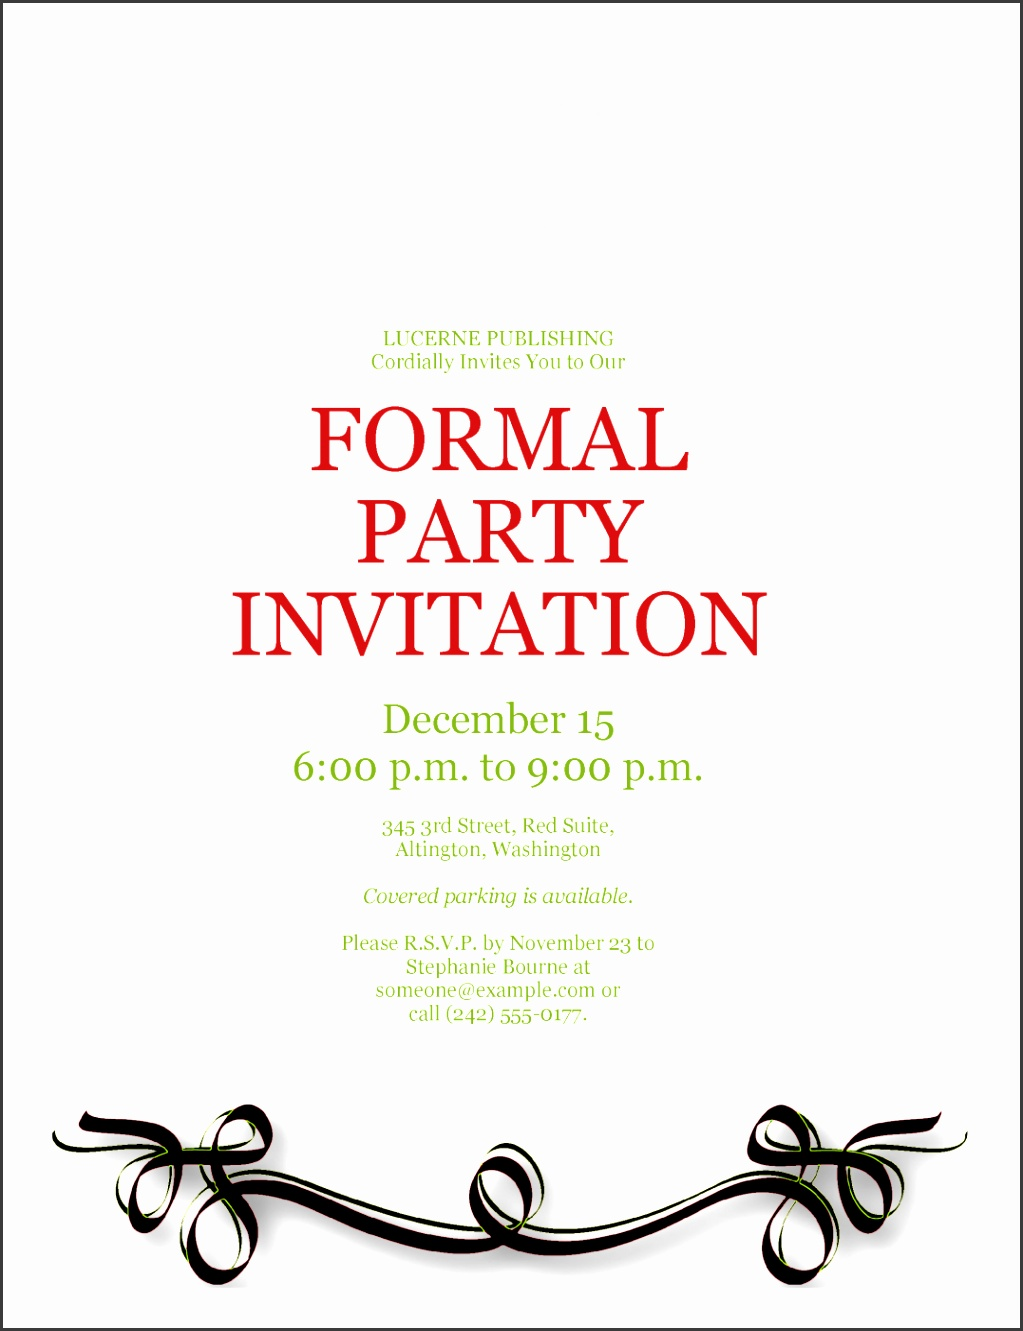 Sample Formal Party Invitation Template